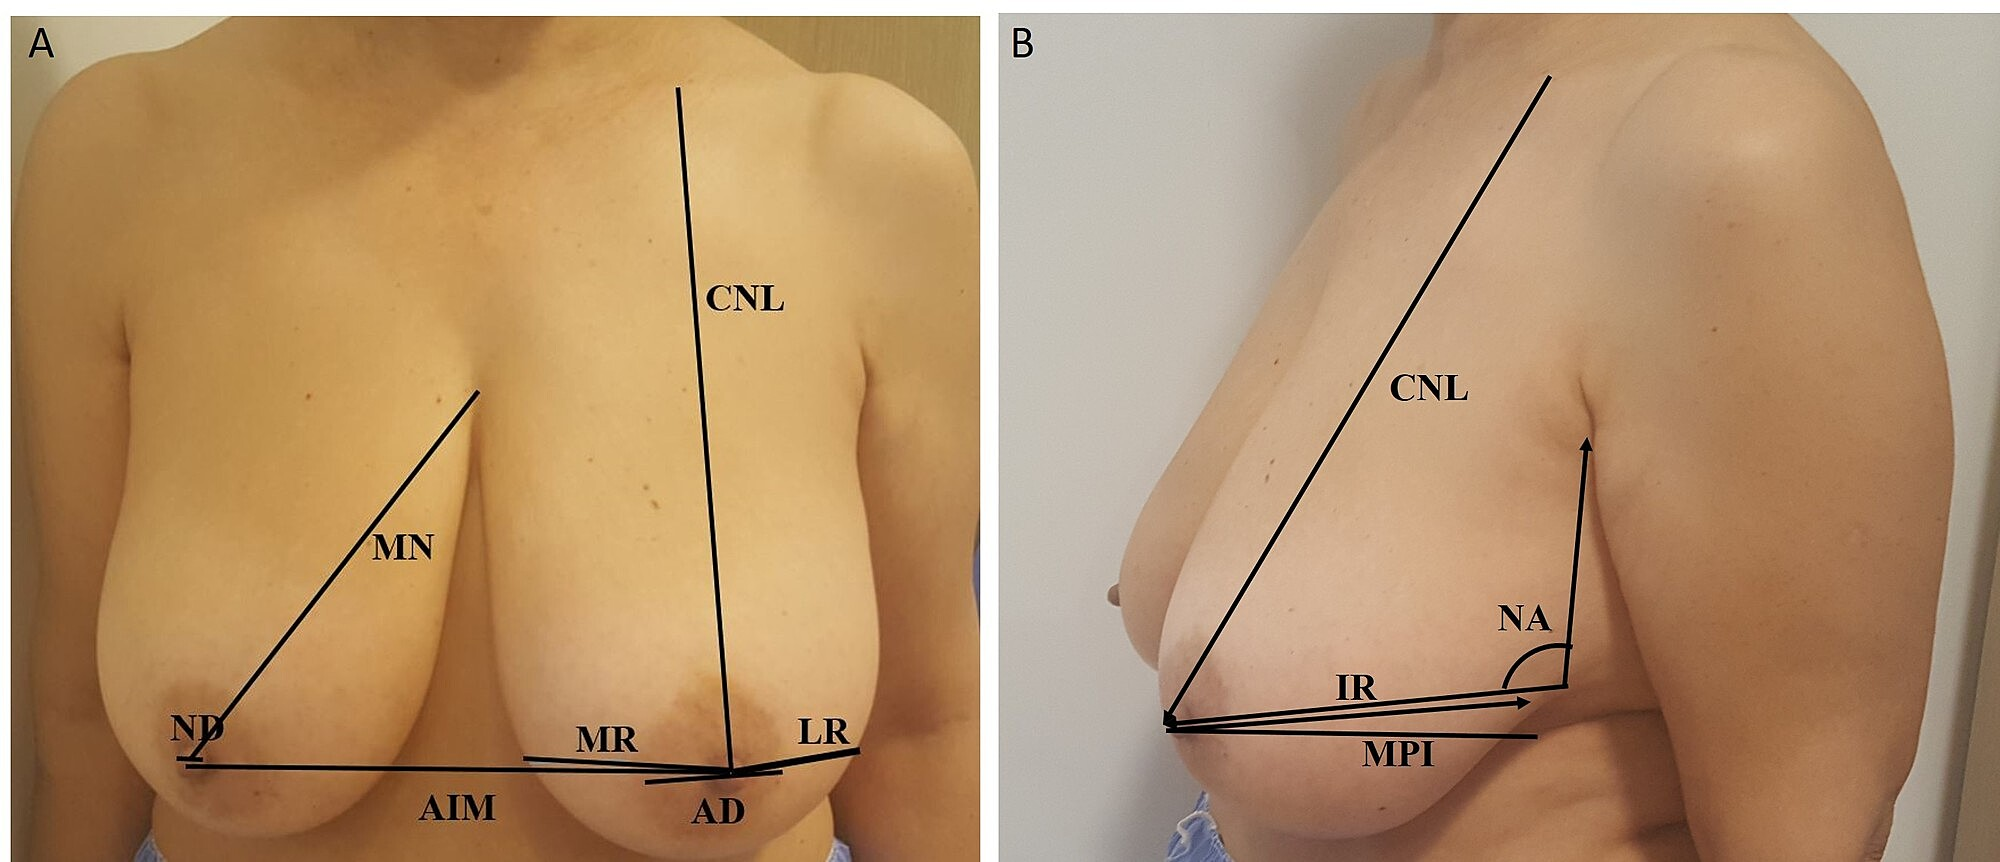 Cureus Investigation Of The Anthropometric Changes In Breast